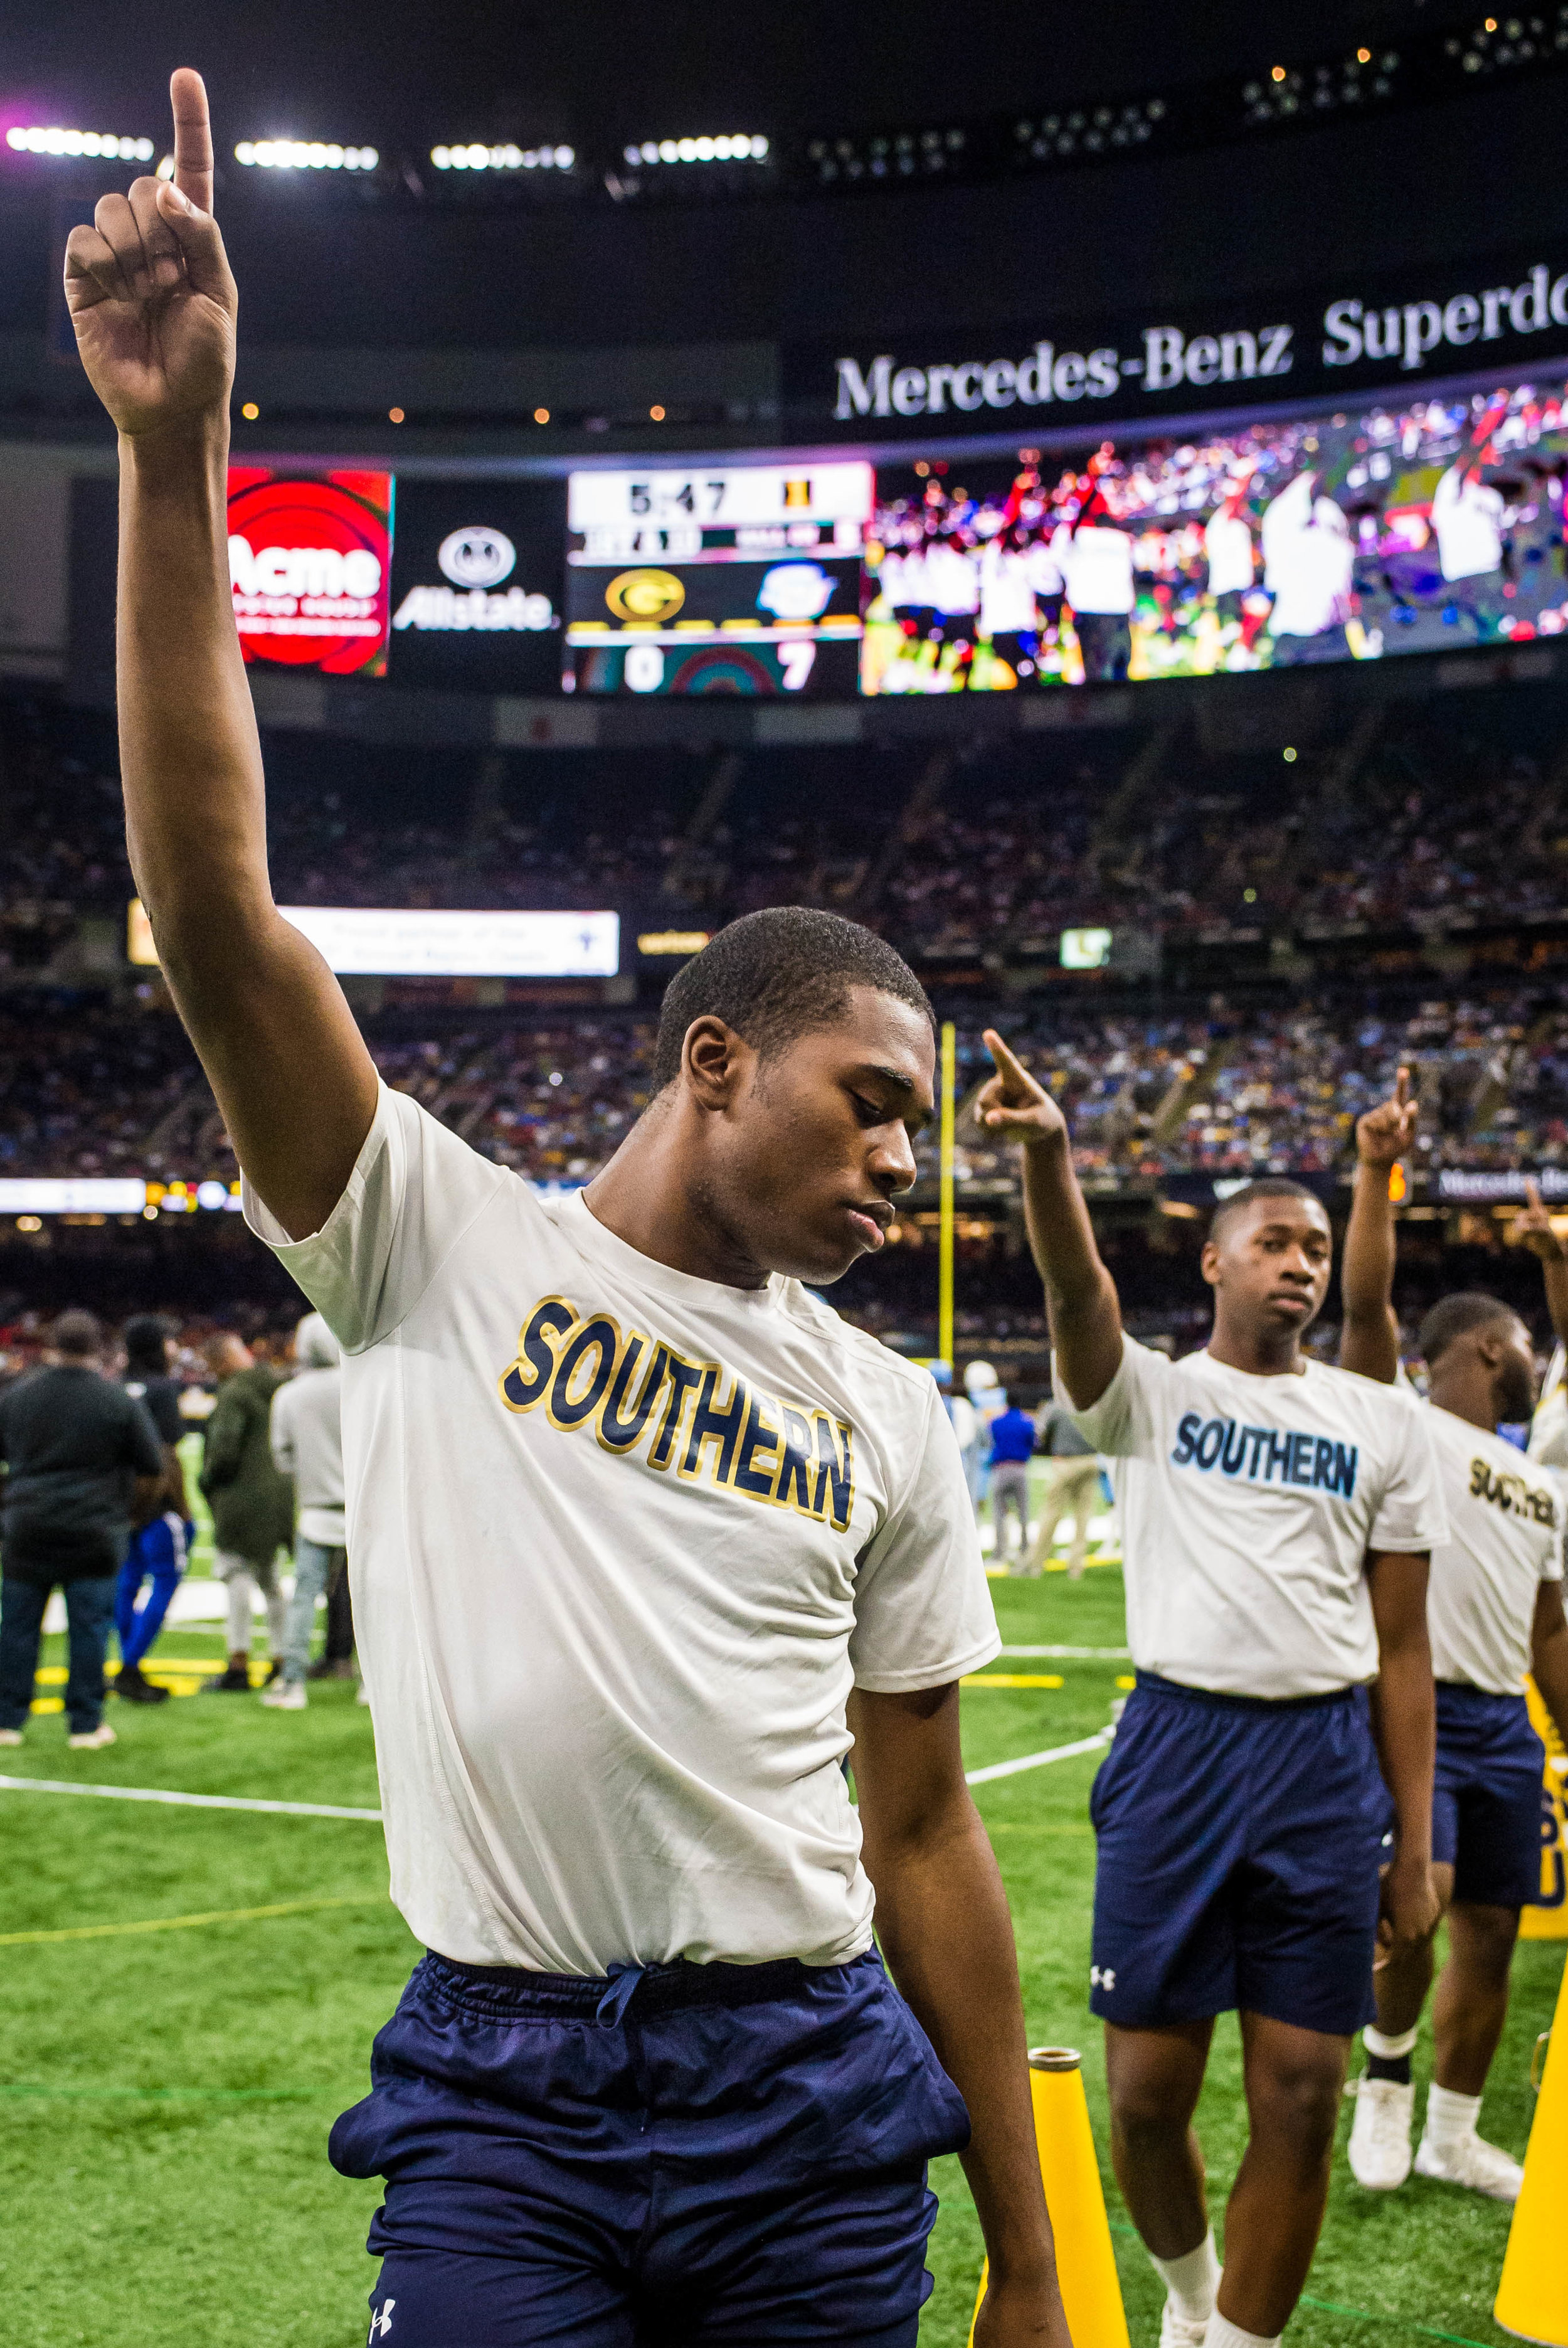 Southern University cheerleaders perform during the 44th annual Bayou Classic on Saturday, Nov. 24, 2018, at the Mercedes-Benz Superdome. Southern won against Grambling State State University 38-28.